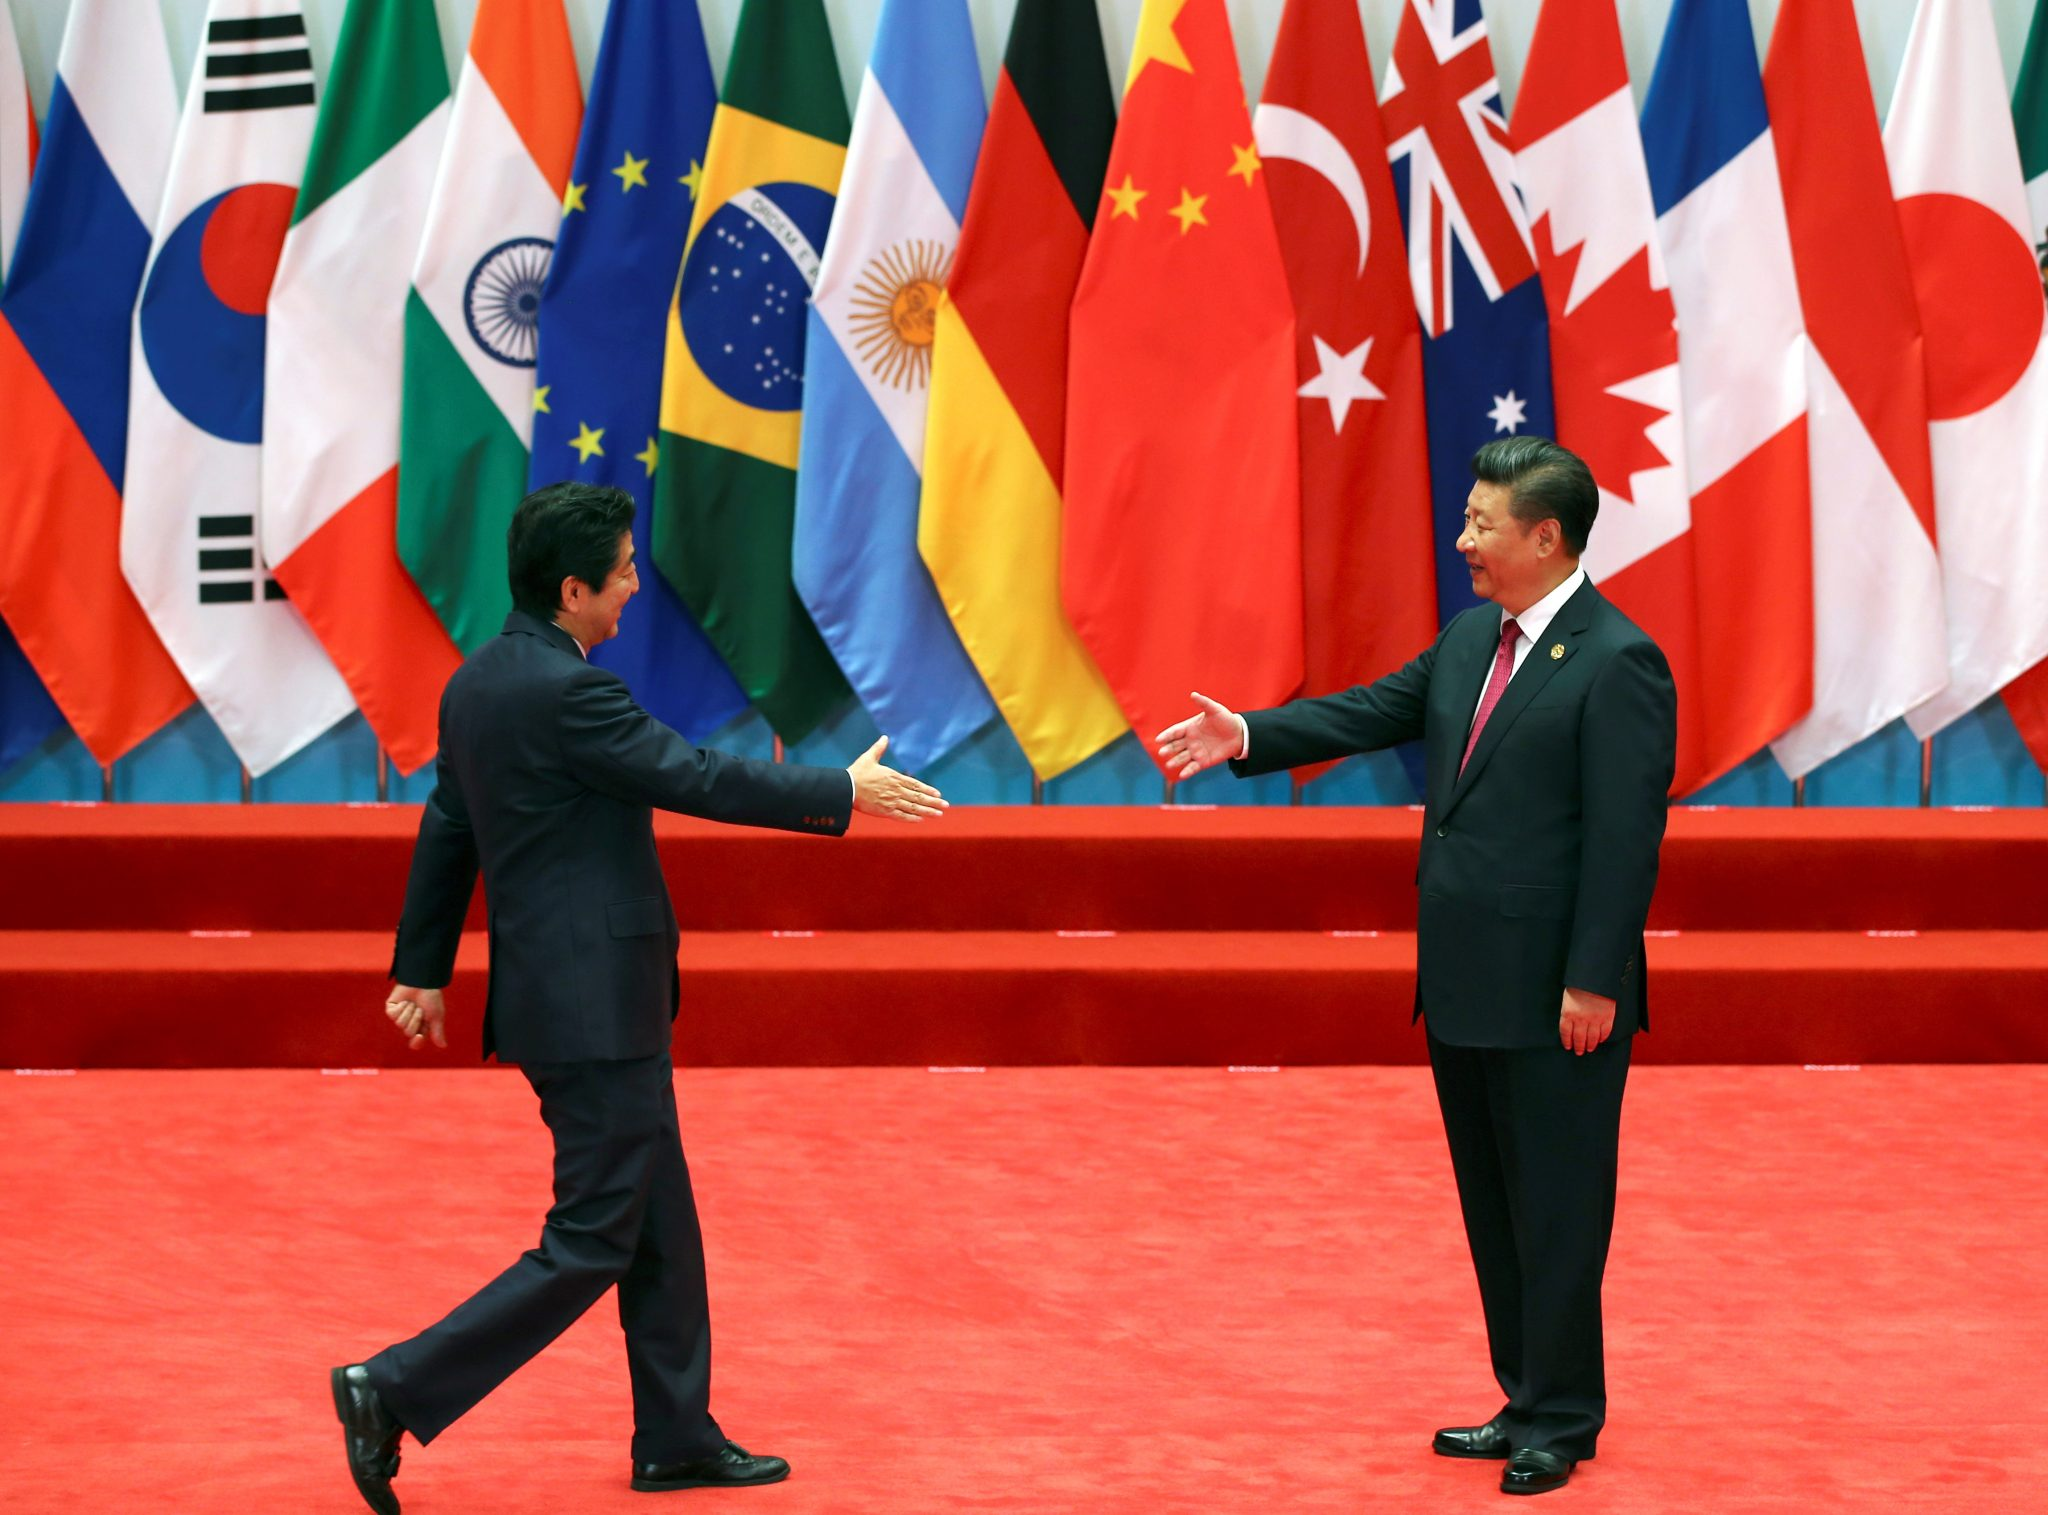 The Belt and Road Initiative reaches now 115 countries from 64 in 2013